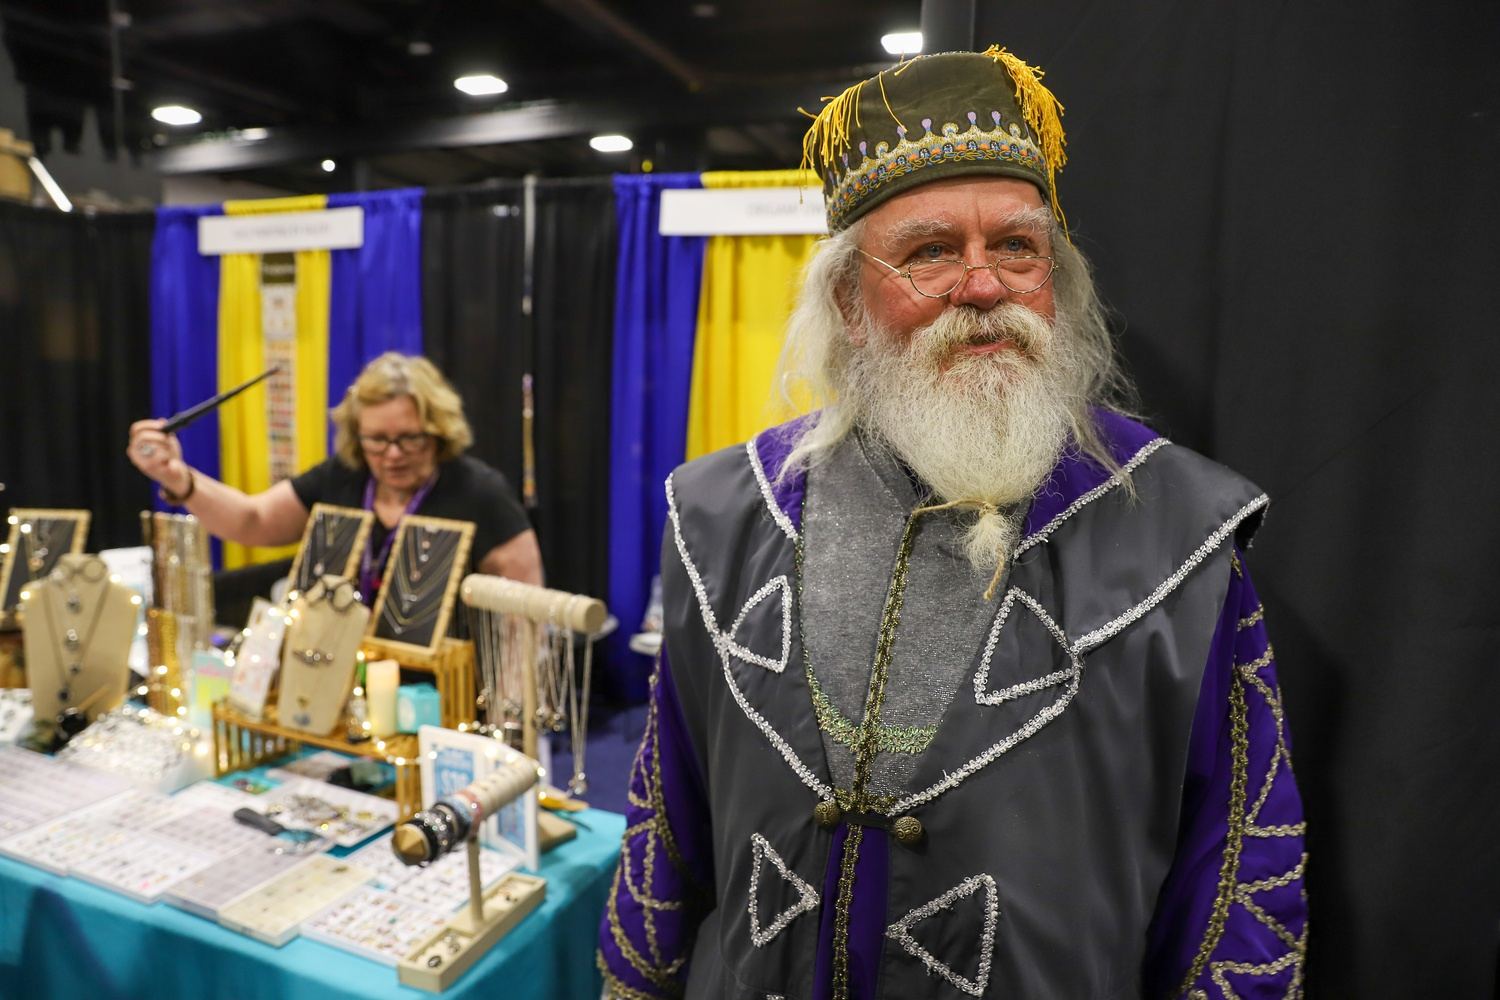 Dave P. Maccawley, cosplaying as Albus Dumbledore, attends his first LeakyCon with his wife Laura, selling jewelry and small trinkets.